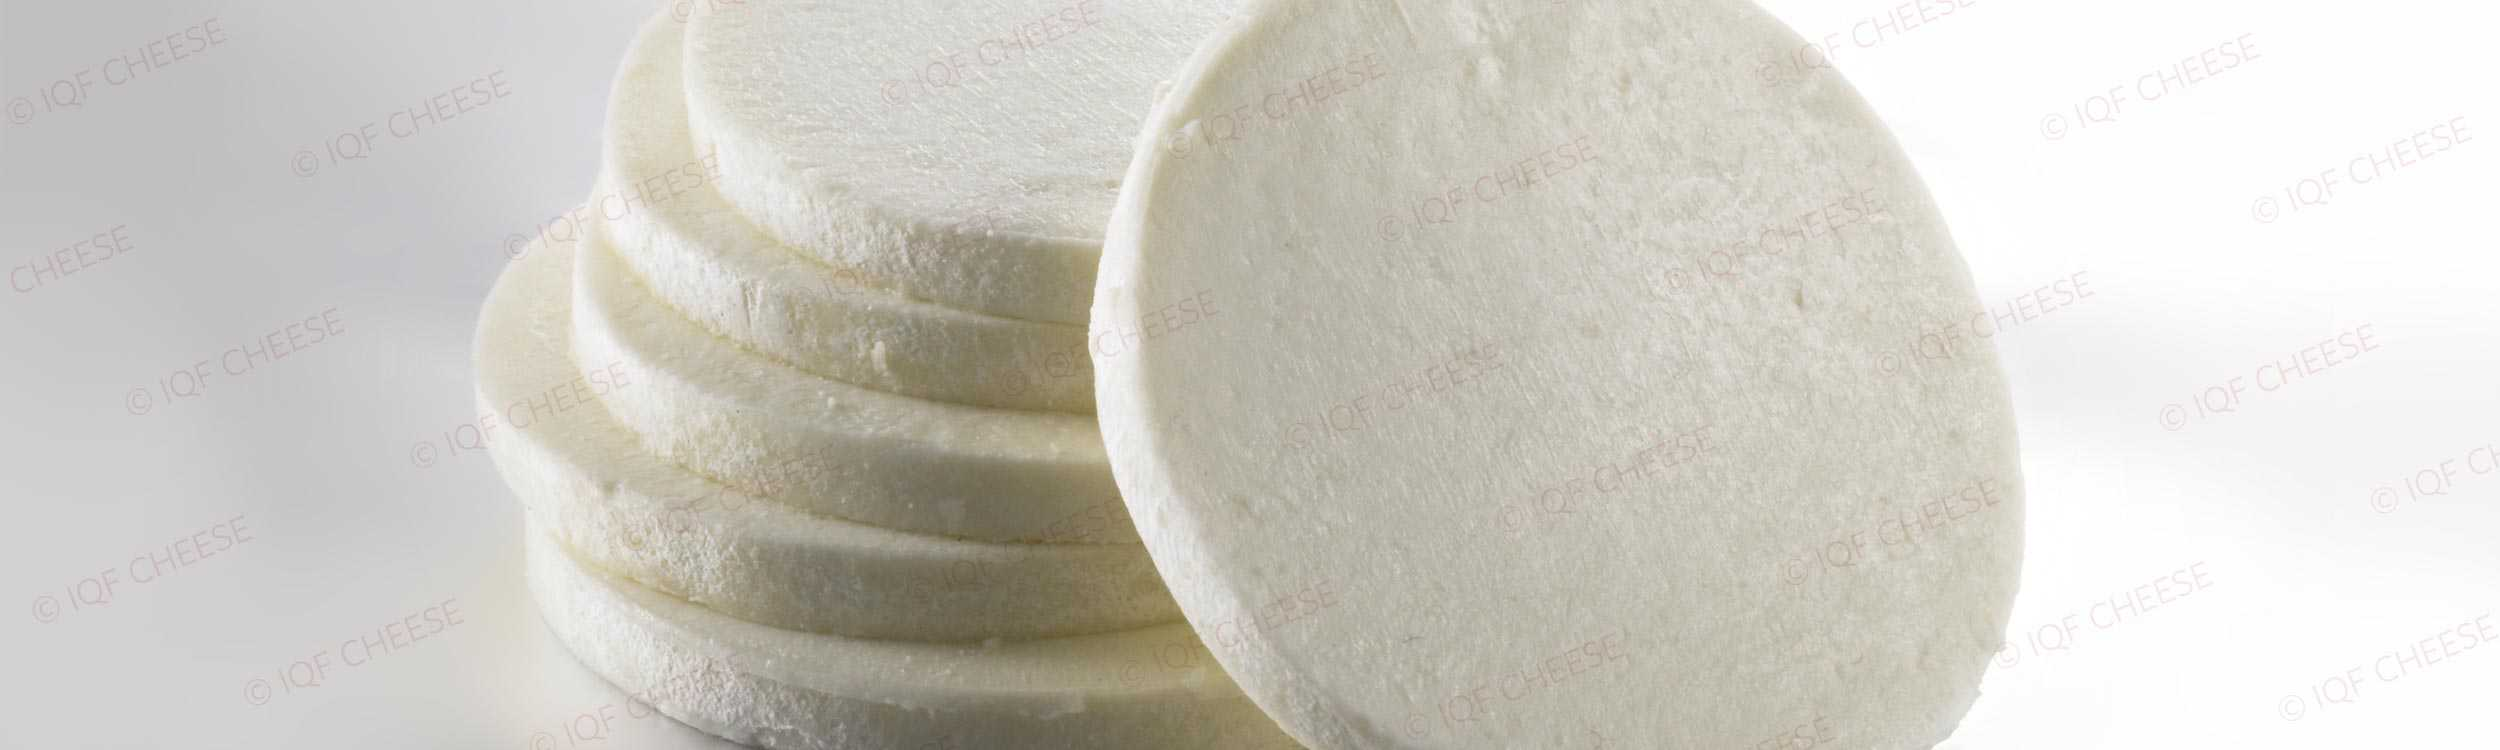 IQF Goats Cheese Unripened